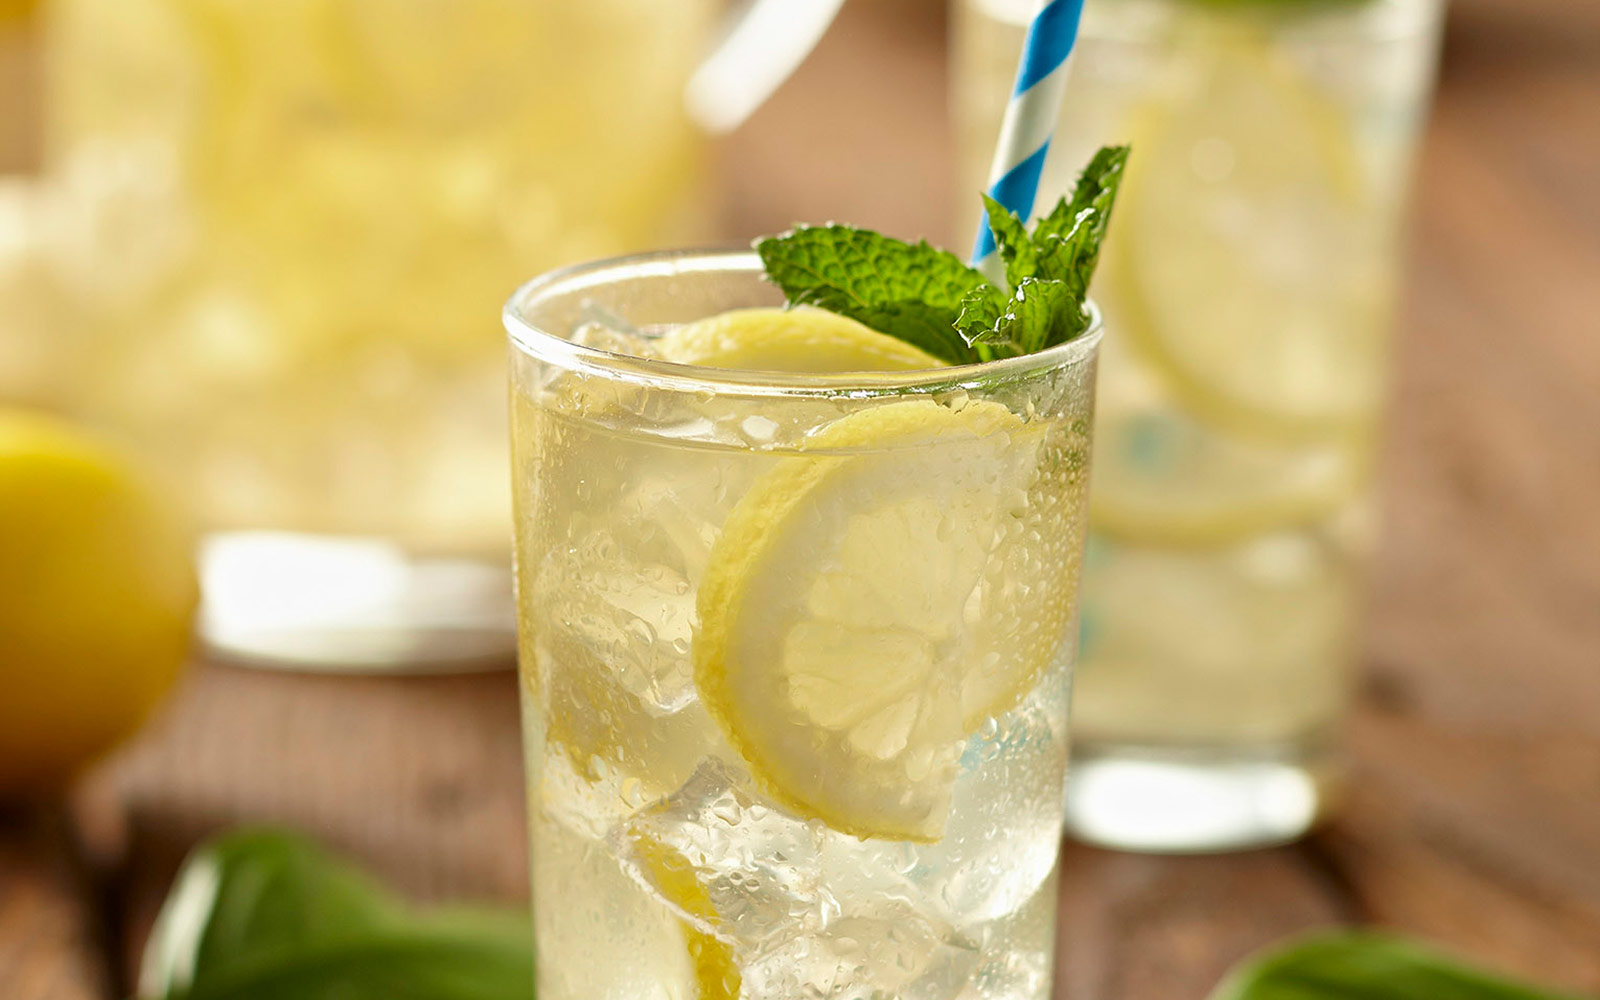 Water glass with lemon slices and mint leaves